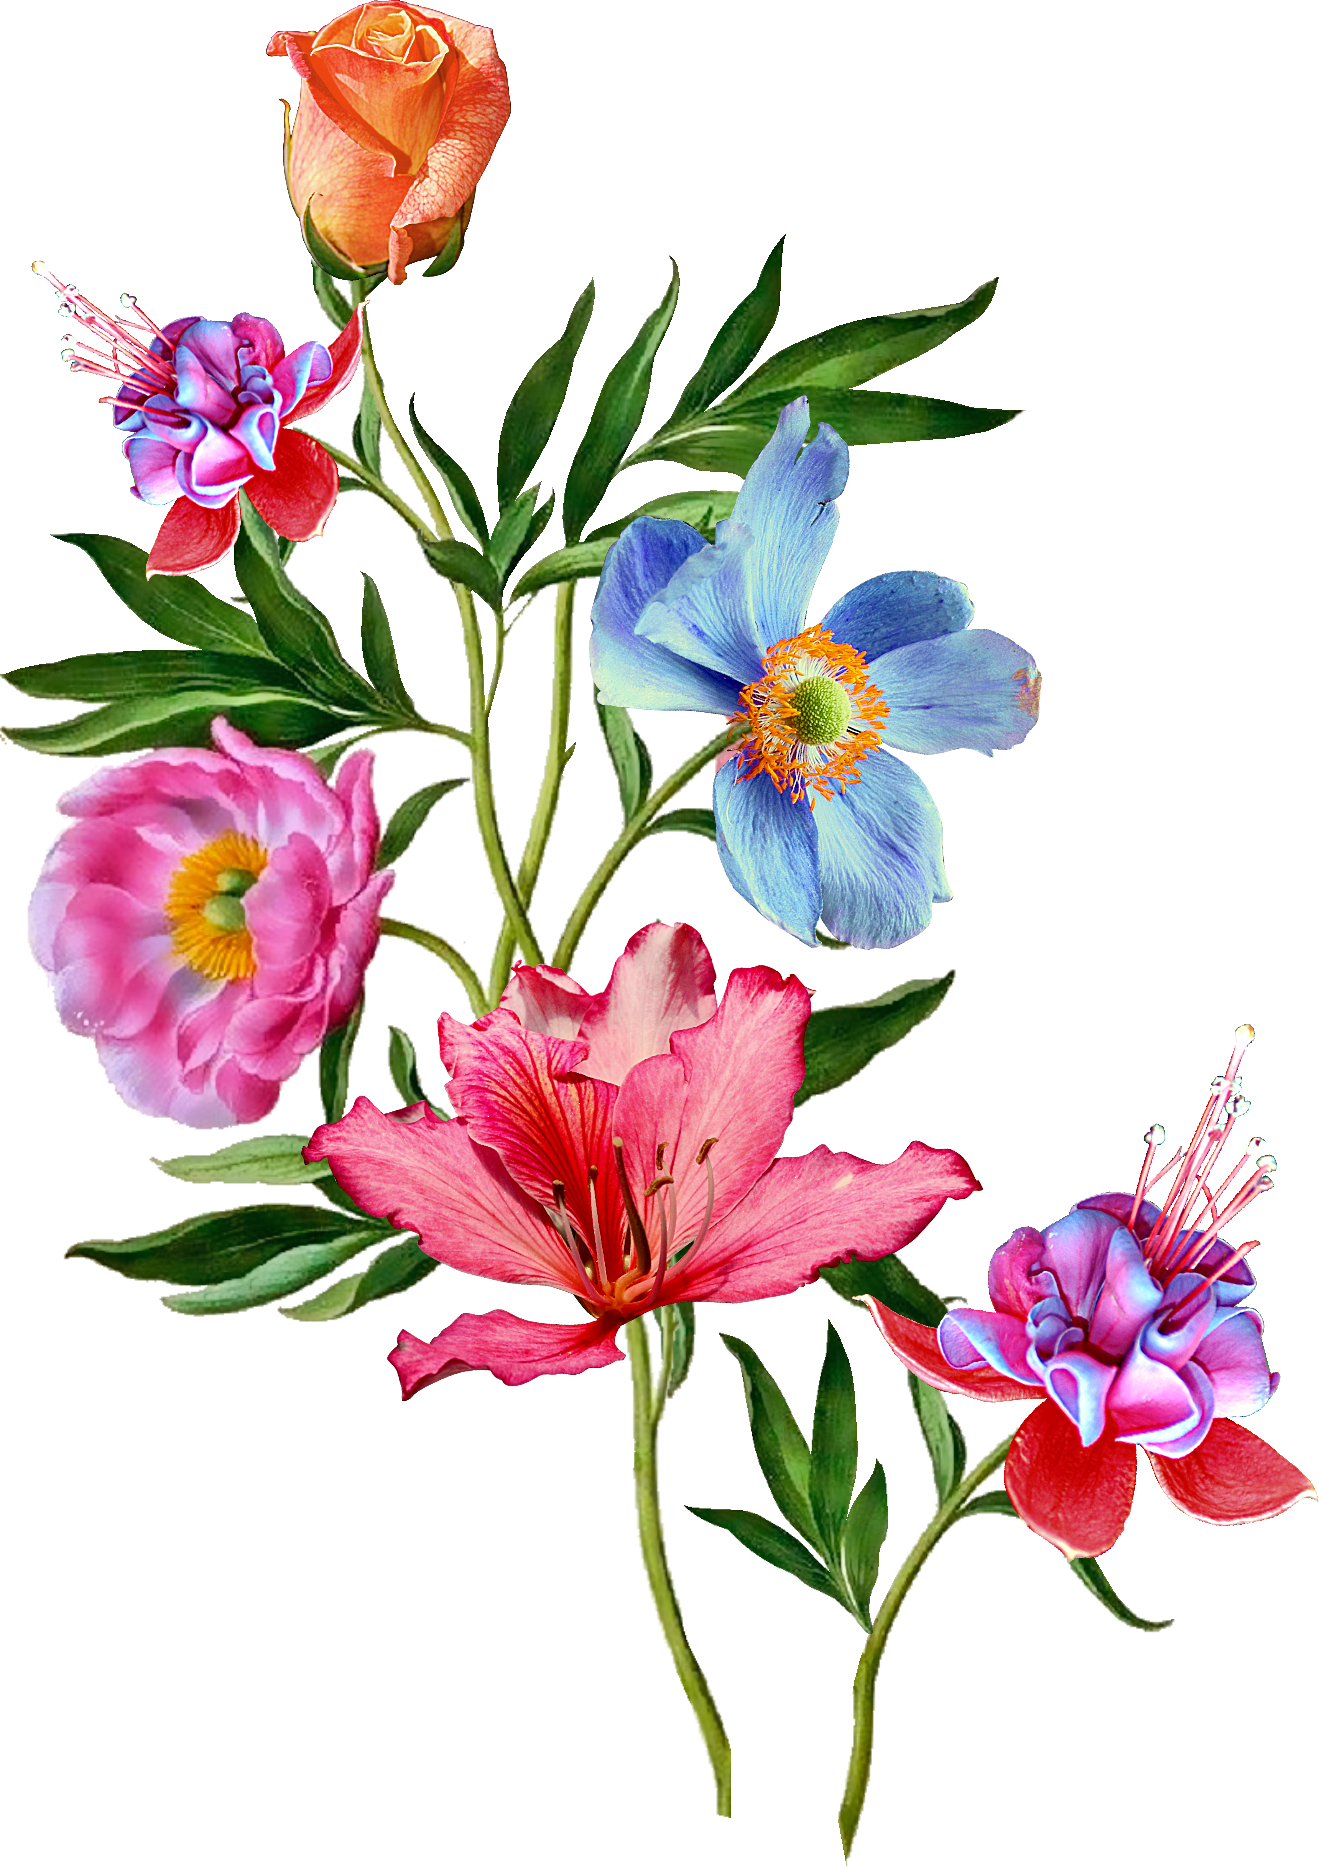 Flower wallpaper clipart image transparent library Pin by vijay on similer | Pinterest | Flowers, Flower and Botanical ... image transparent library